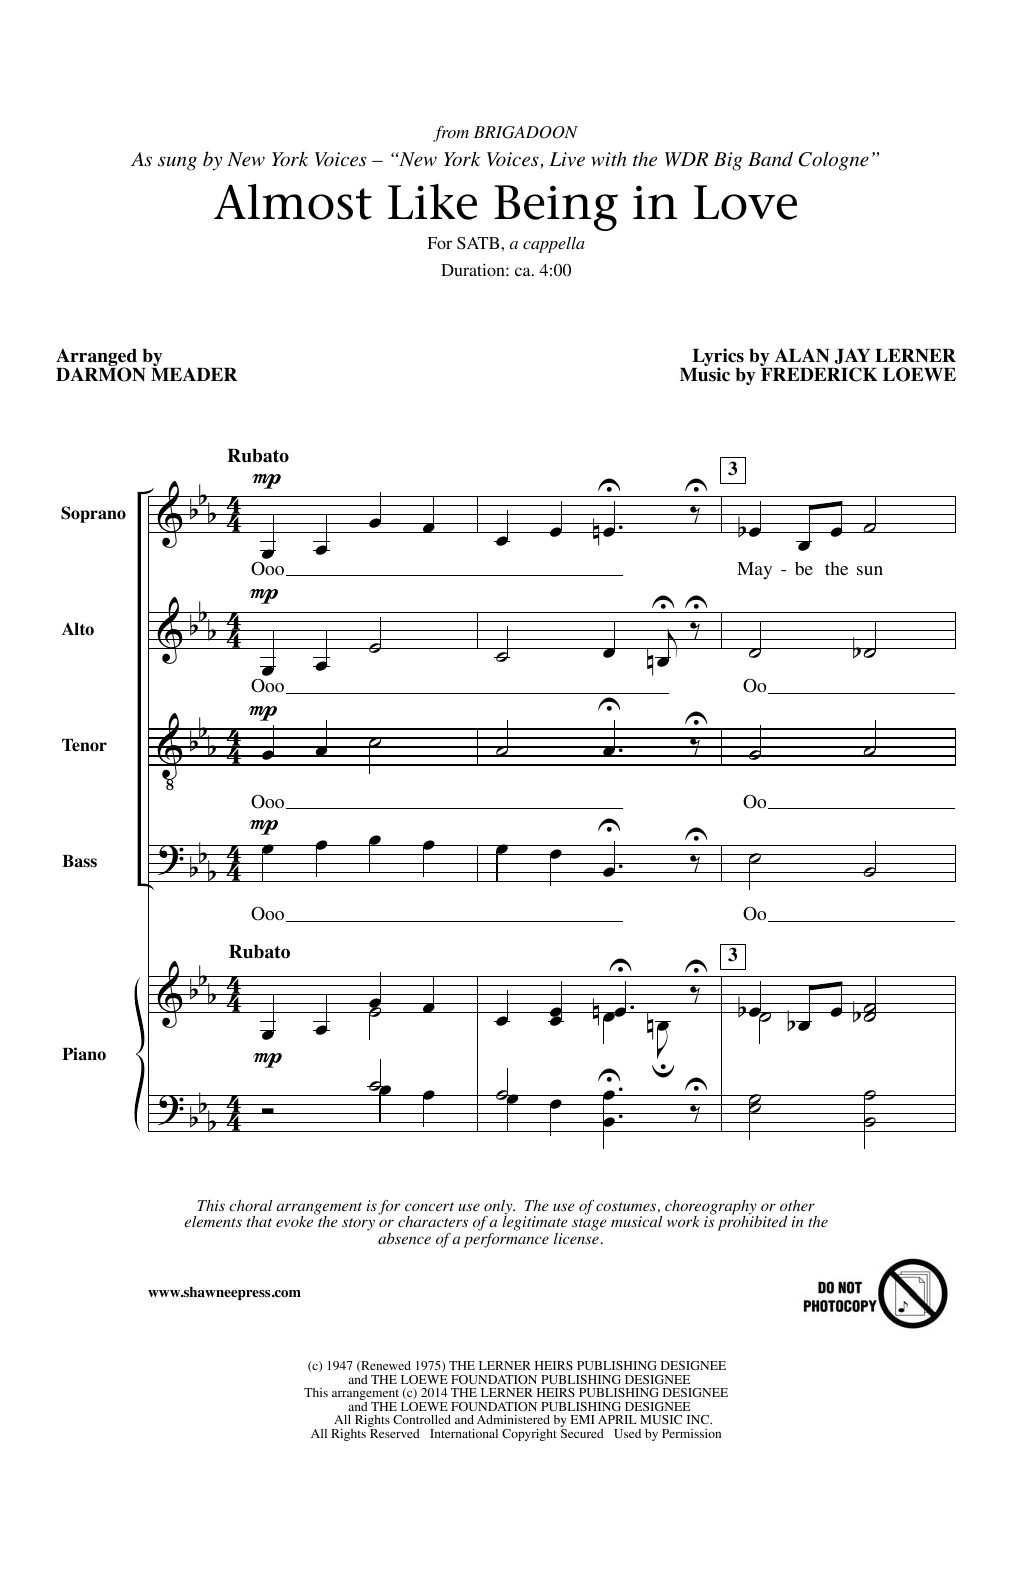 Partition chorale Almost Like Being In Love (arr. Darmon Meader) de Lerner & Loewe - SATB